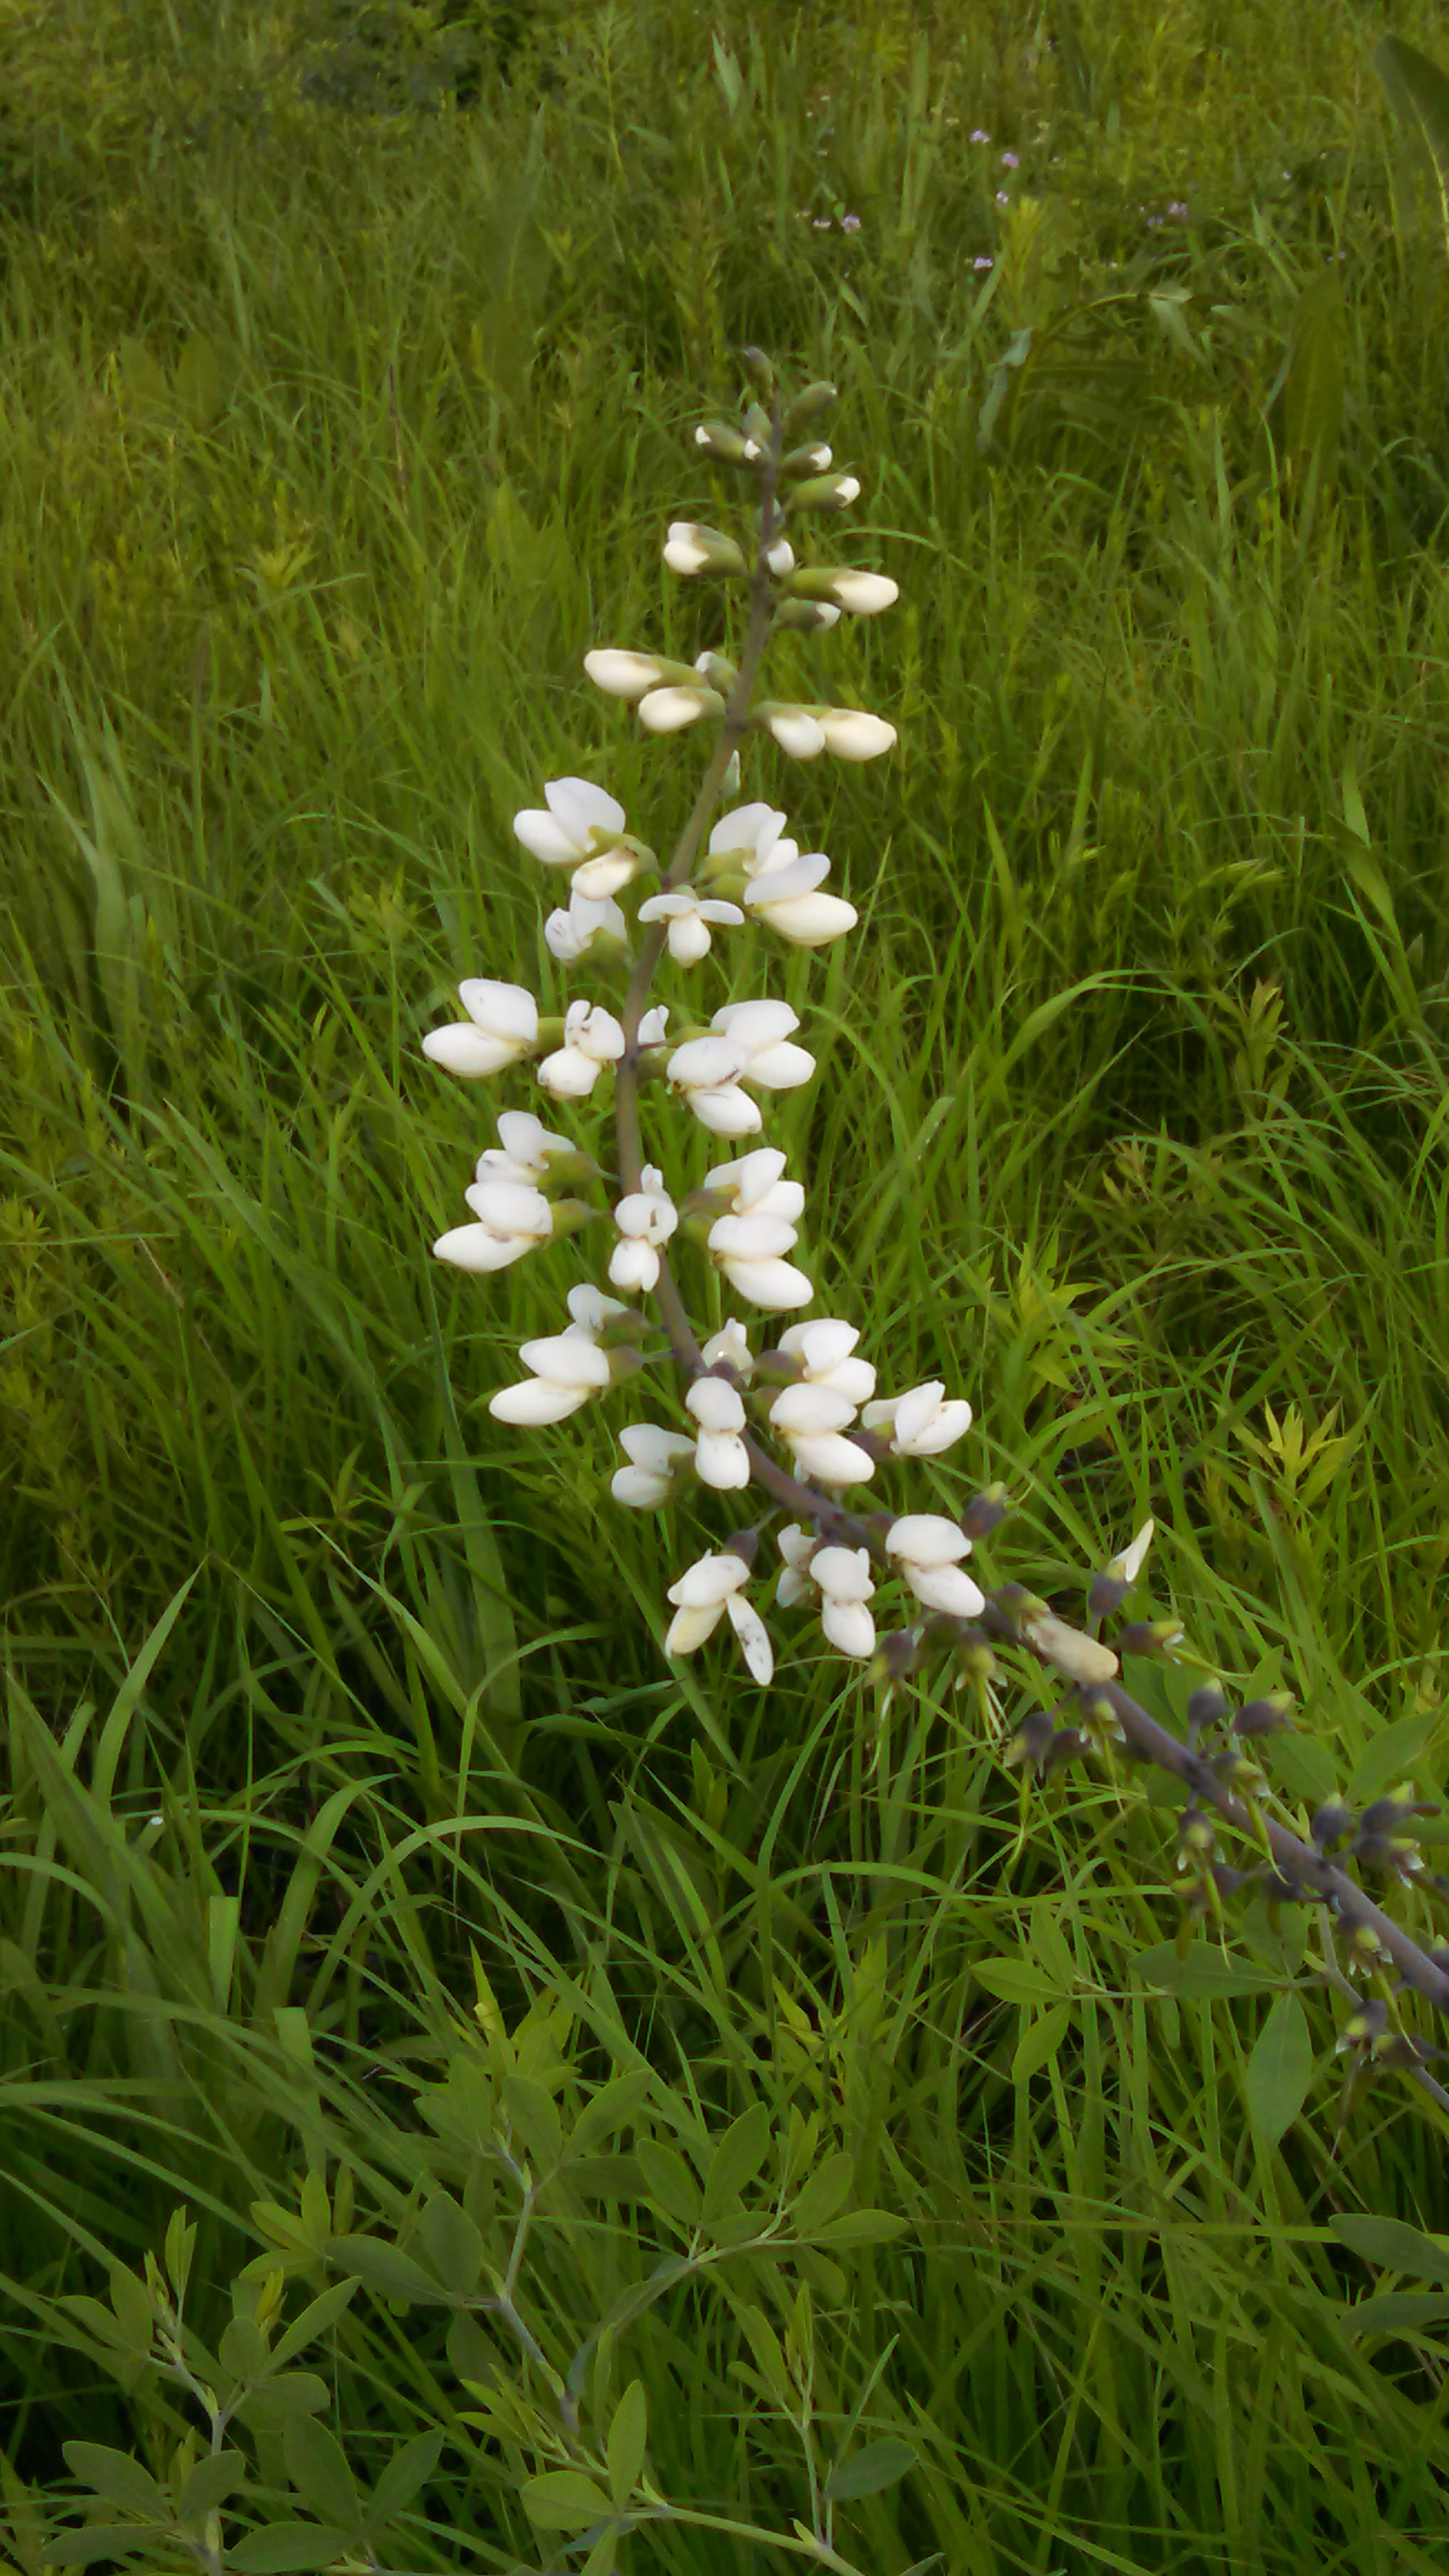 Baptisia stem recently bloomed on the Fermilab prairie. Photo: Barb Kristen, PPD